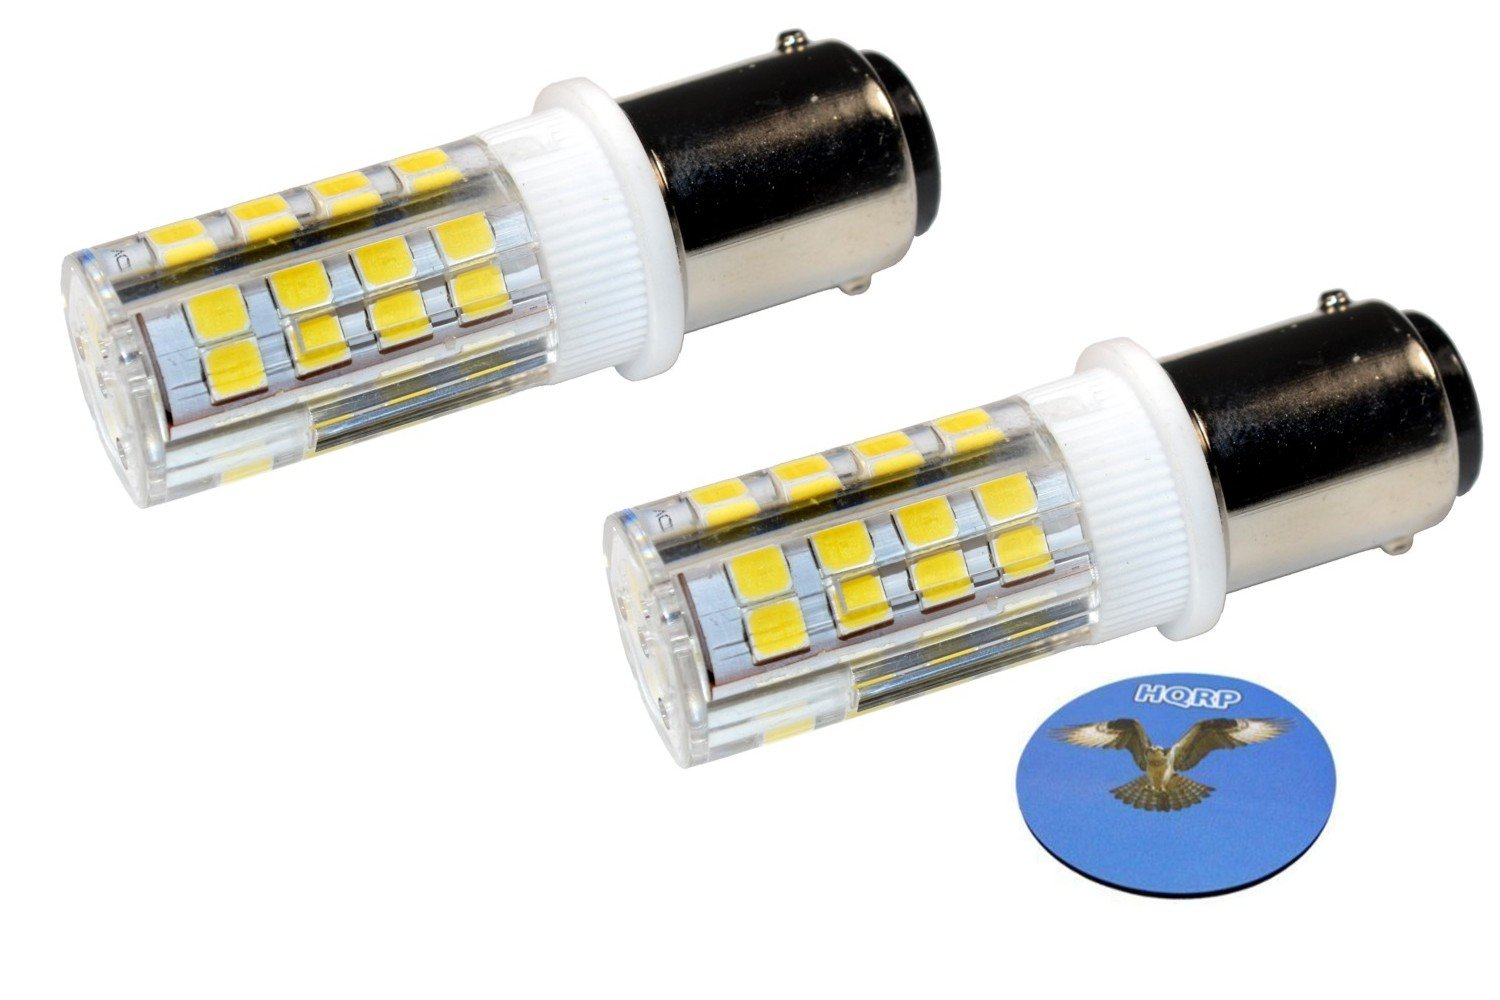 HQRP 2-Pack Sewing Machine LED Light Bulb for Janome (Newhome) 108 134D 204D 659 1004 1612 1622 1814 1818 1822 3125 3434D MC4018 My Excel 4023 MX3123 TB-12 Plus HQRP Coaster